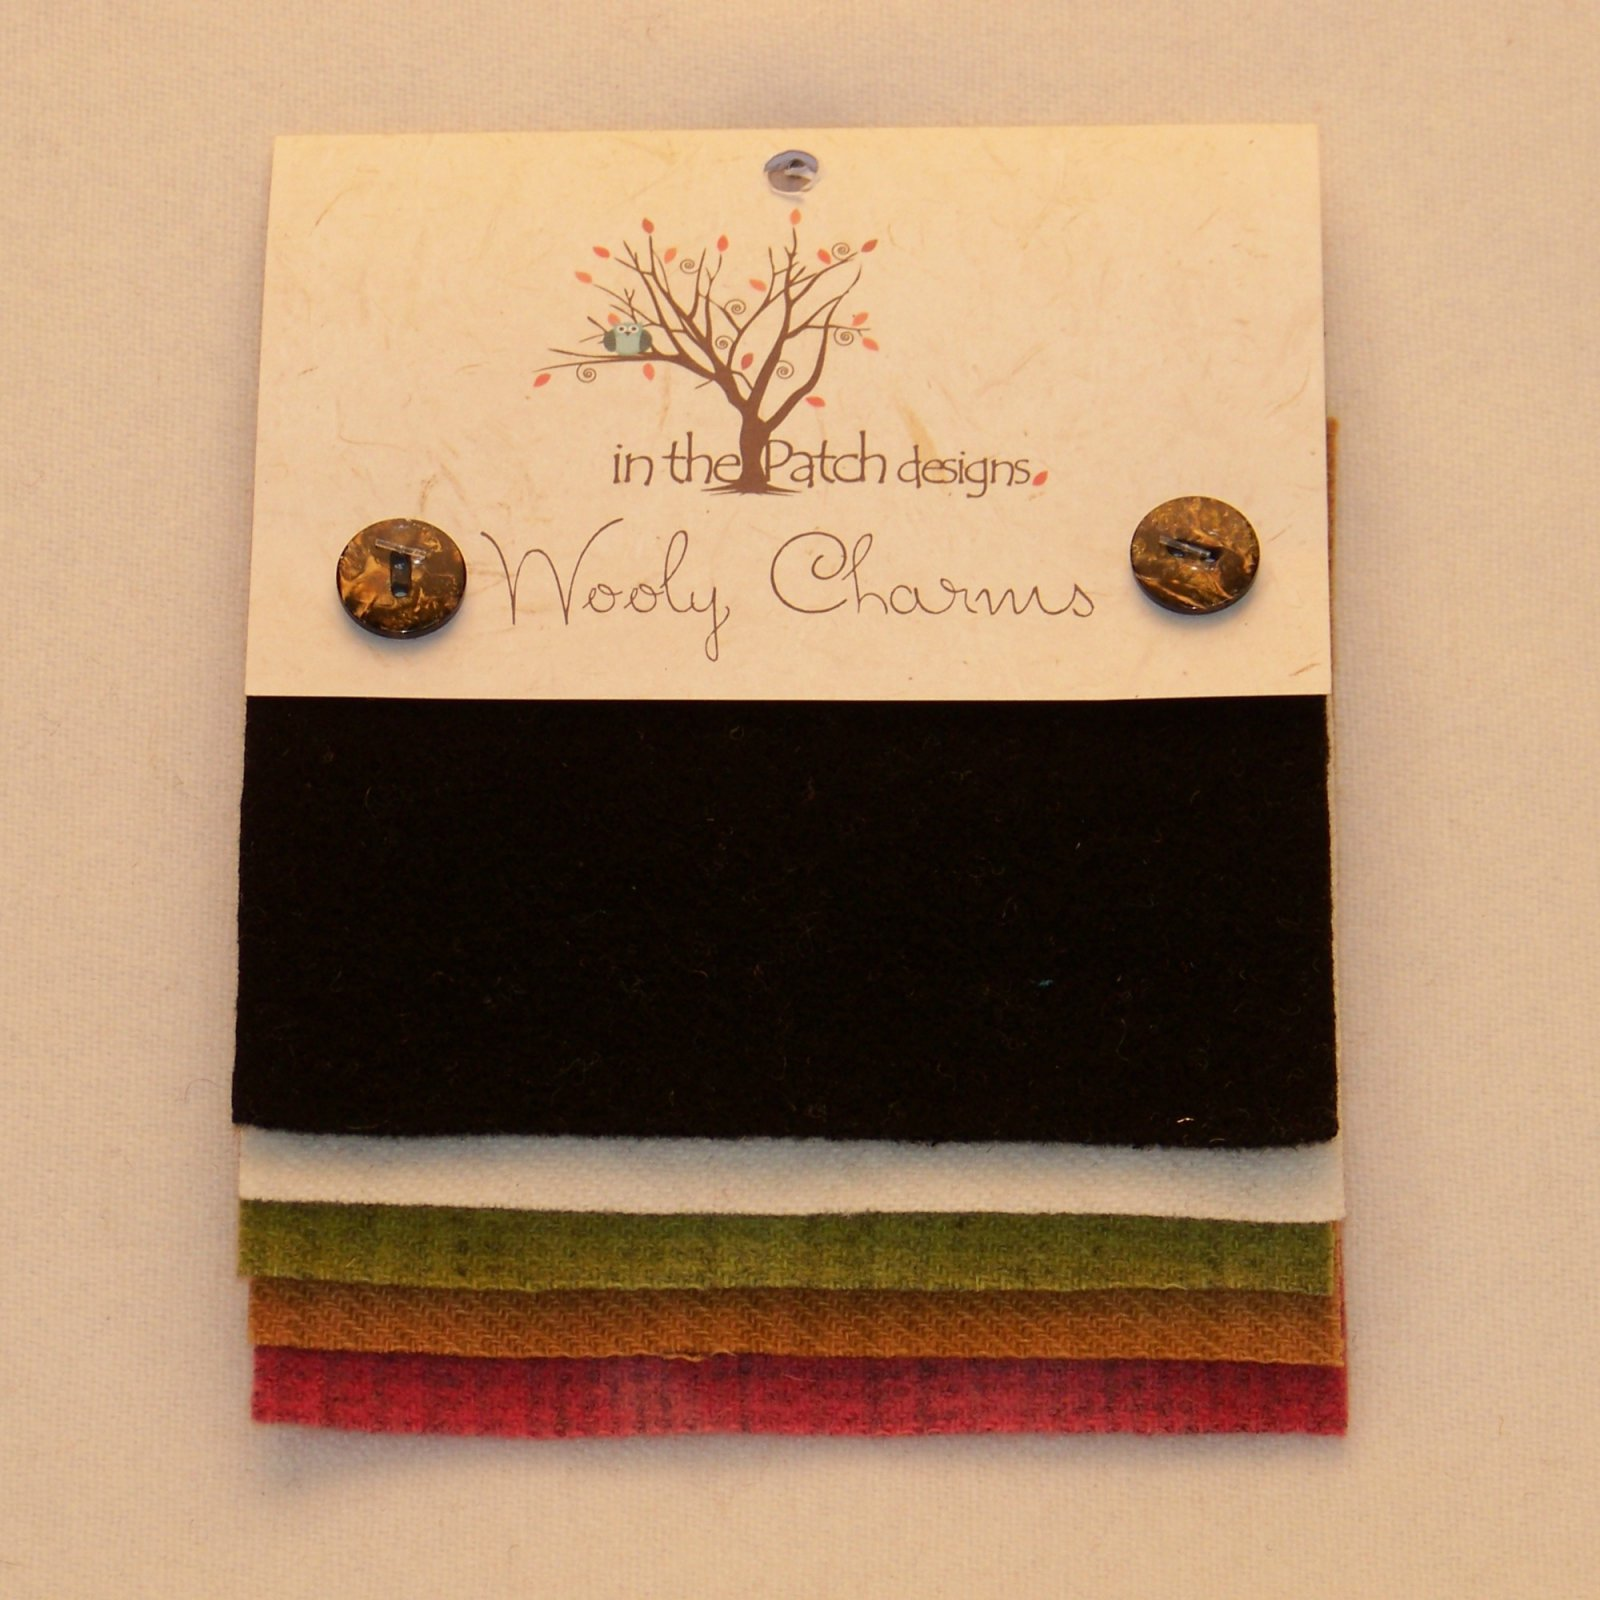 Wooly Charms 5in x 5in Black Tie 5ct